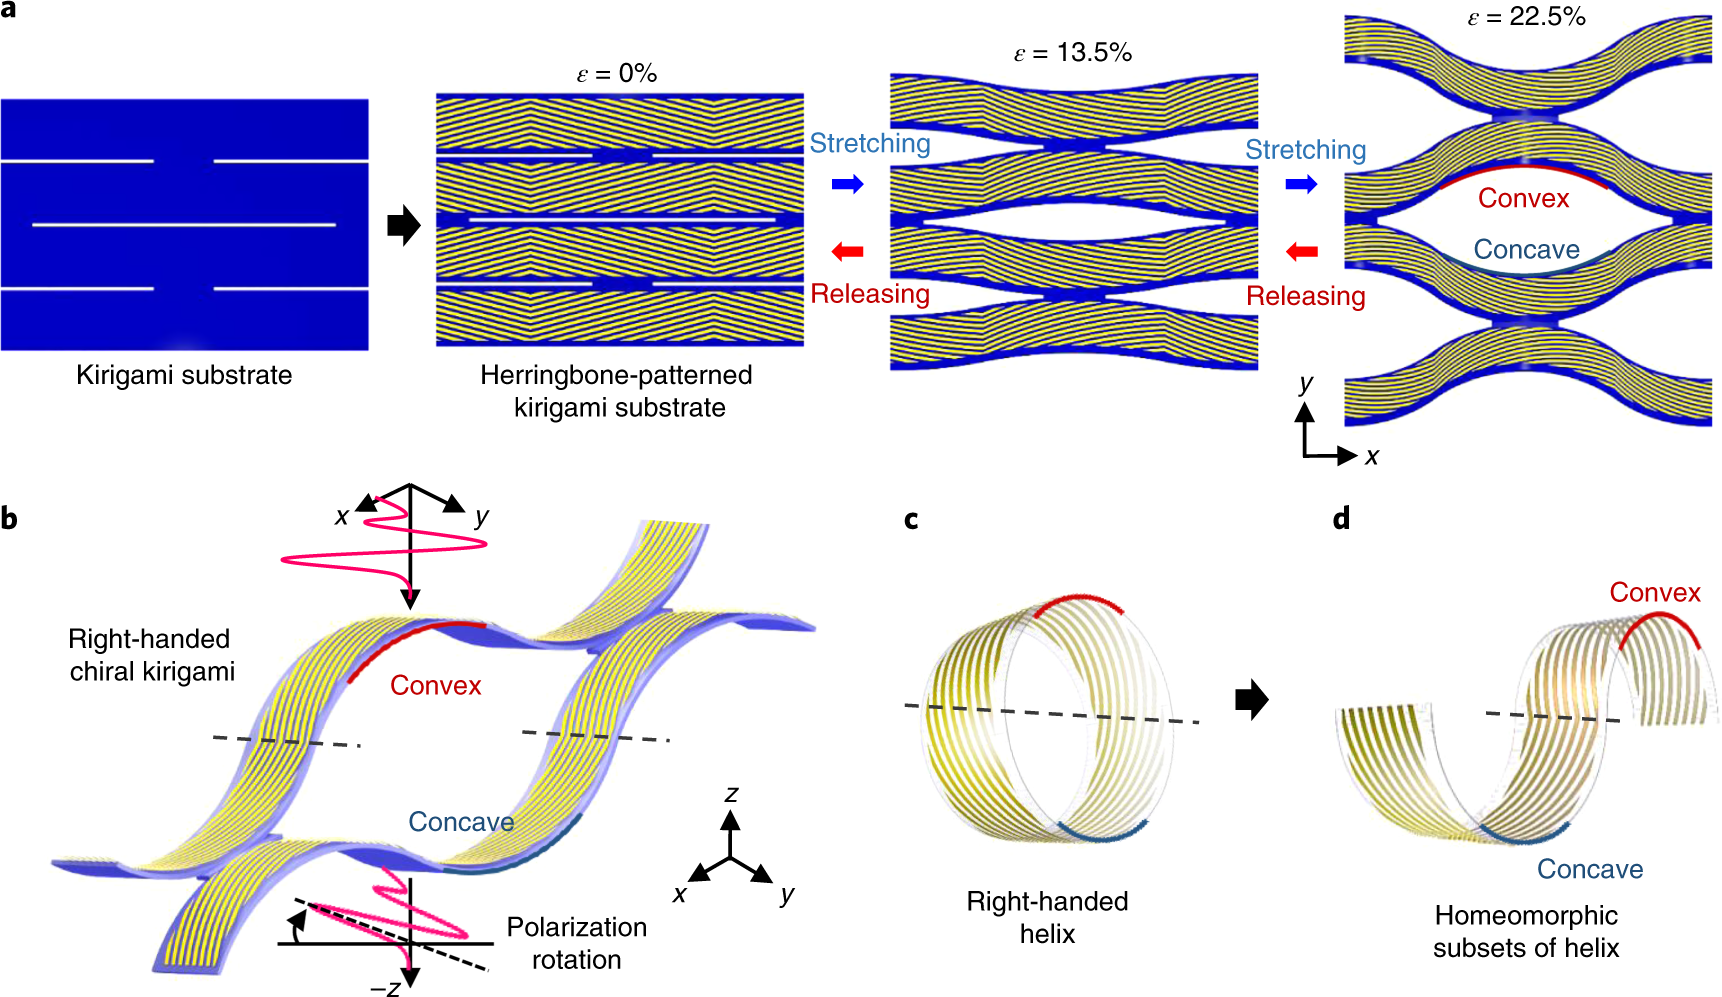 Terahertz circular dichroism spectroscopy of biomaterials enabled by k